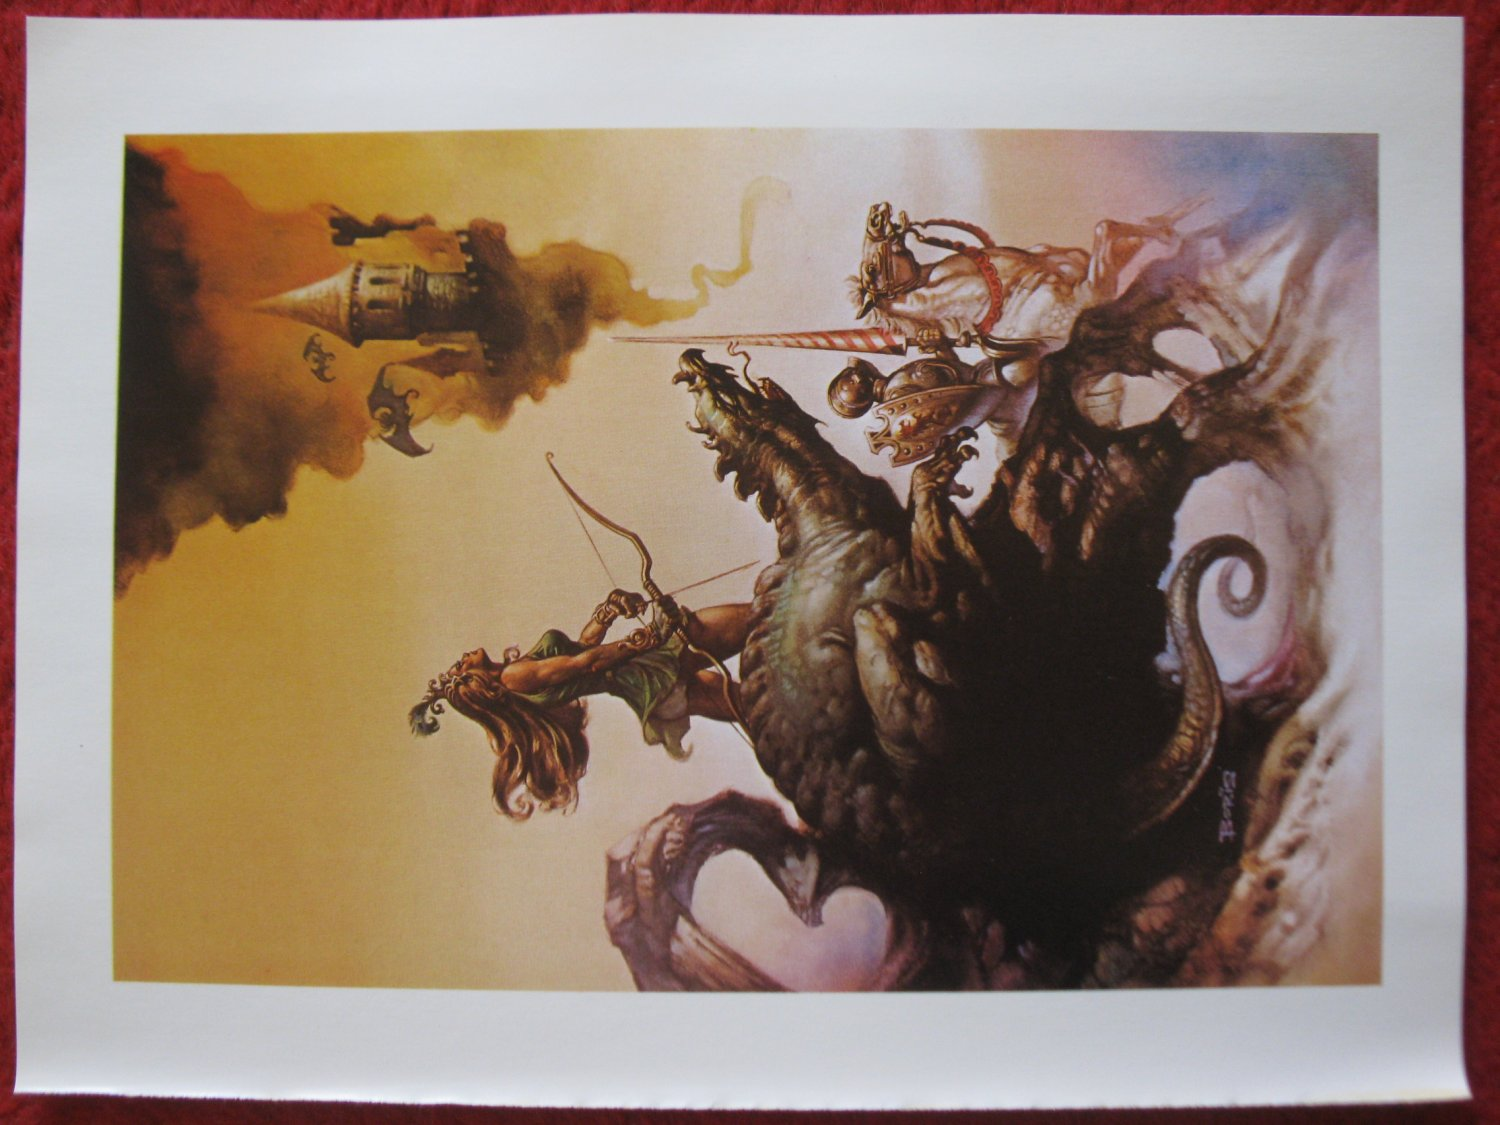 "vintage Boris Vallejo: The Dragon and The George (skycastle) - 11.5"" x 8.5"" Book Plate Print"